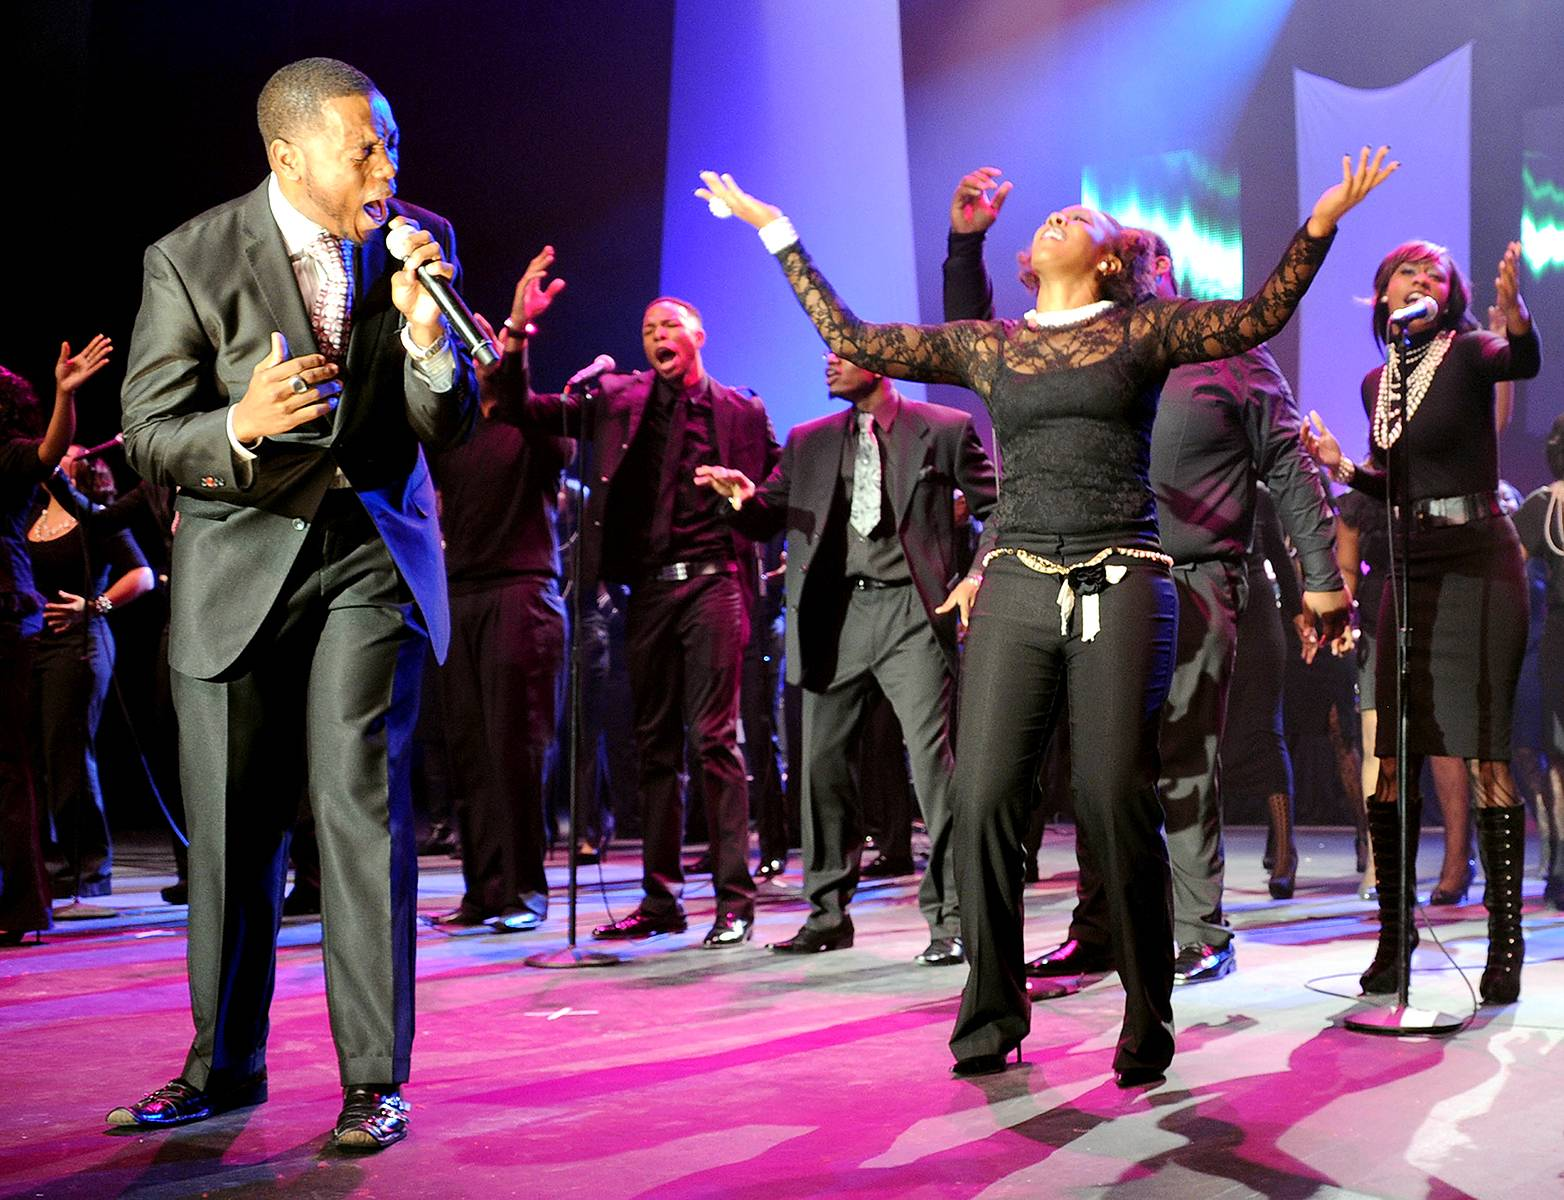 """Live Your Destiny - Reverend Michael J. Fisher and Voices of Destiny Choir,the 2010winner of Verizon's """"How Sweet the Sound"""" competition, perform during the Super Bowl Gospel Celebration 2011 at Music Hall at Fair Park in Dallas.(Photo: Rick Diamond/Getty Images for Super Bowl Gospel Celebration 2011)"""